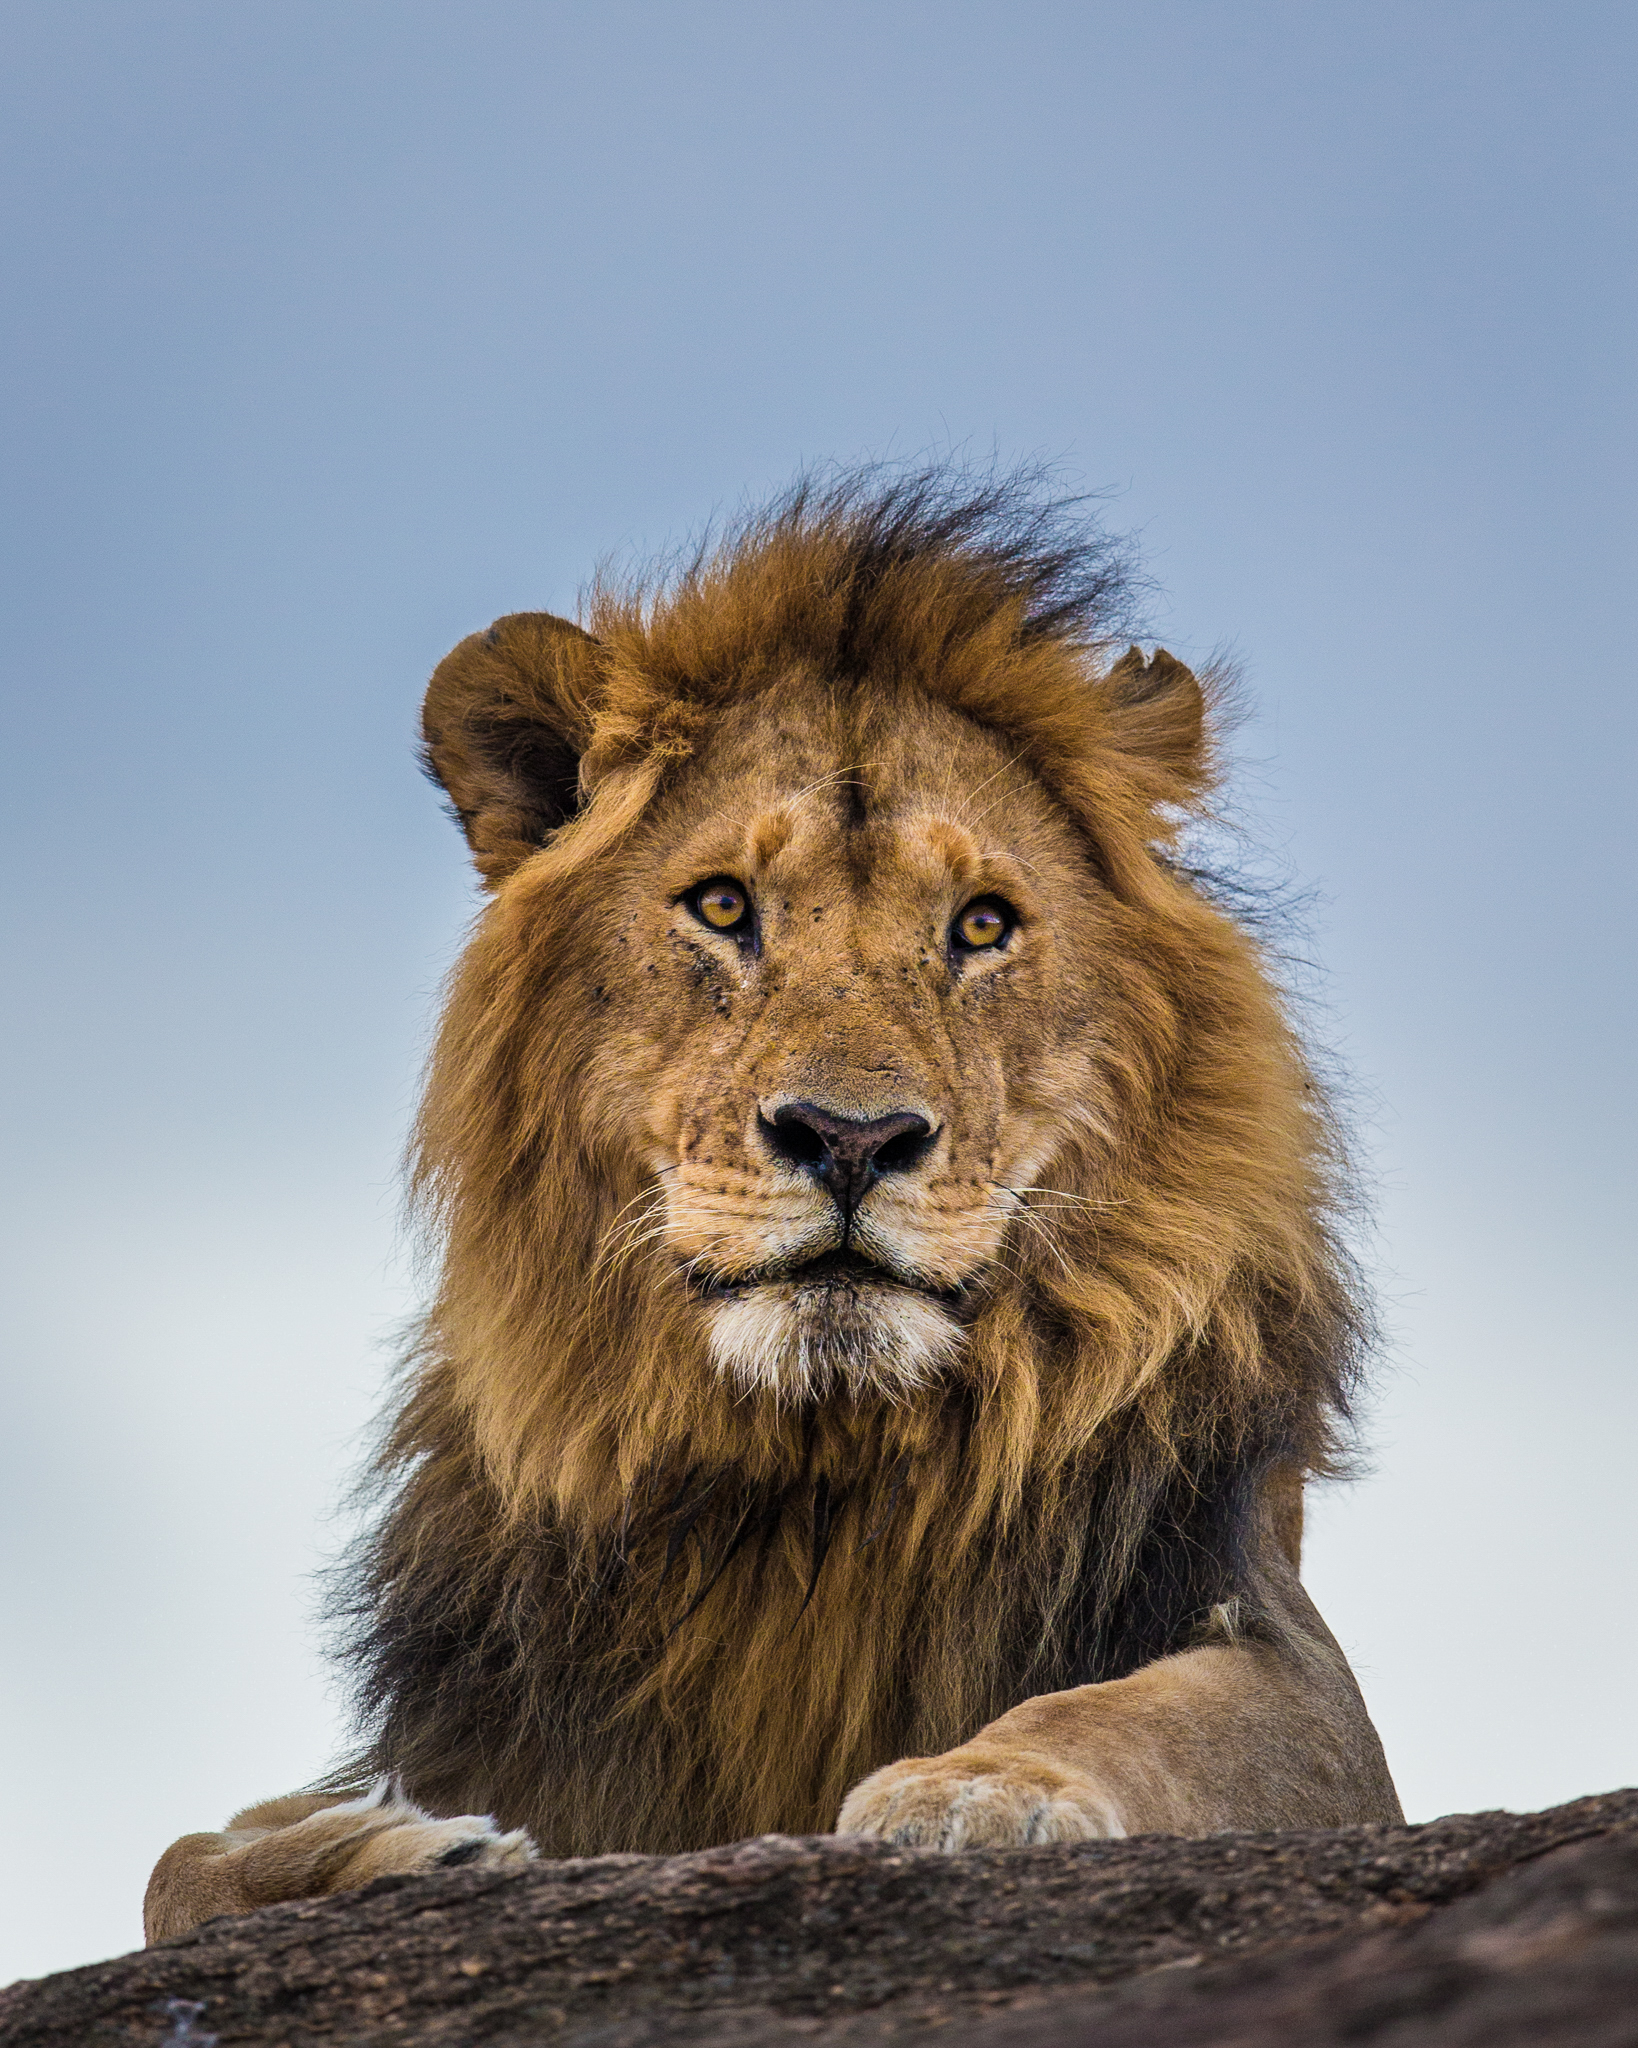 A male lion surveys his territory on the outskirts of the Masai Mara National Reserve.